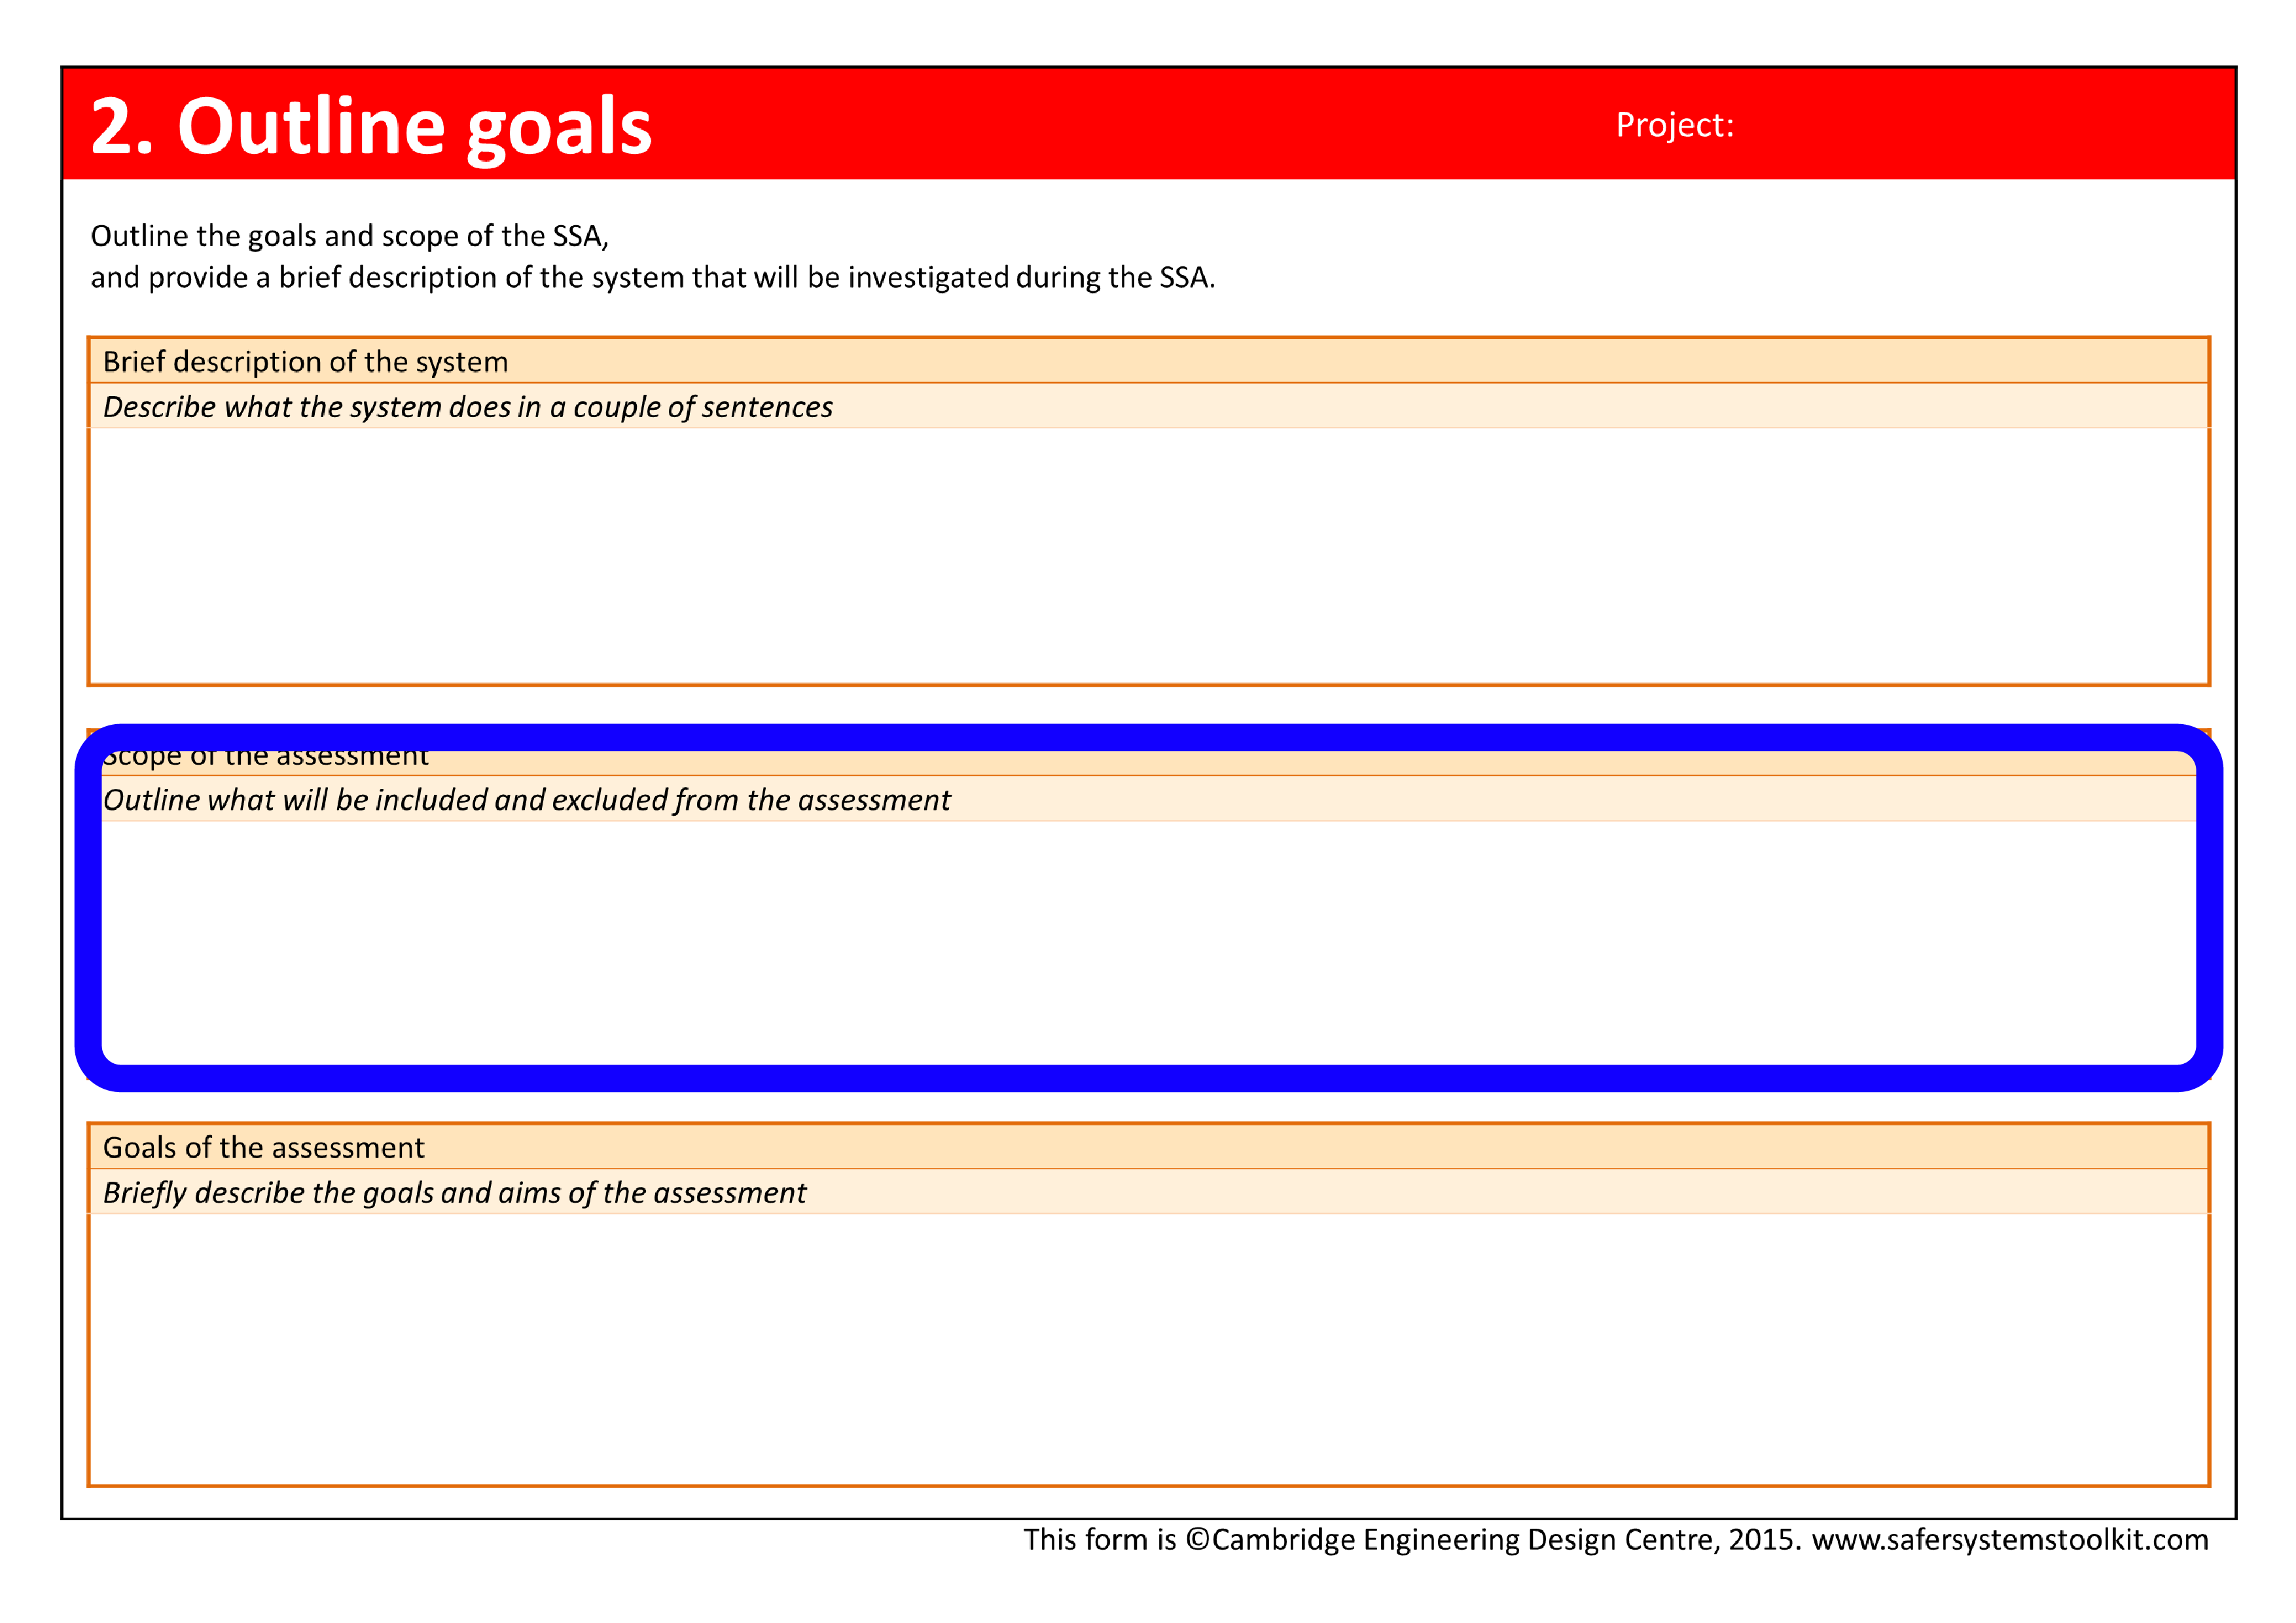 Screenshot of Outline goals page of the assessment form